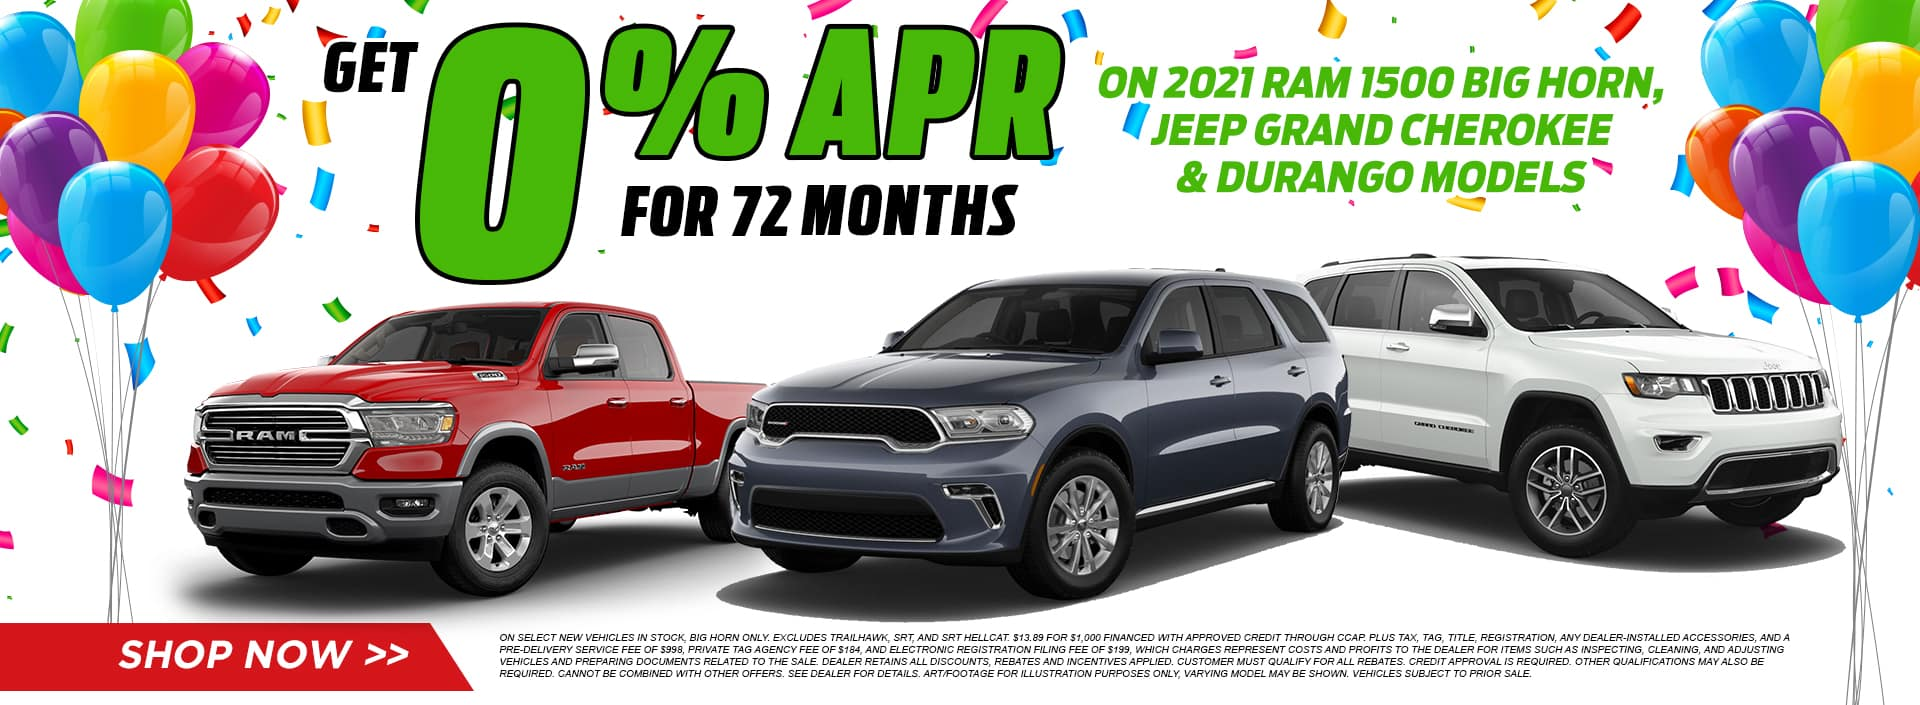 2021 RAM Big Horn, 2021 Jeep Grand Cherokee and 2021 Durango Models Get 0% APR Financing for 72 Months